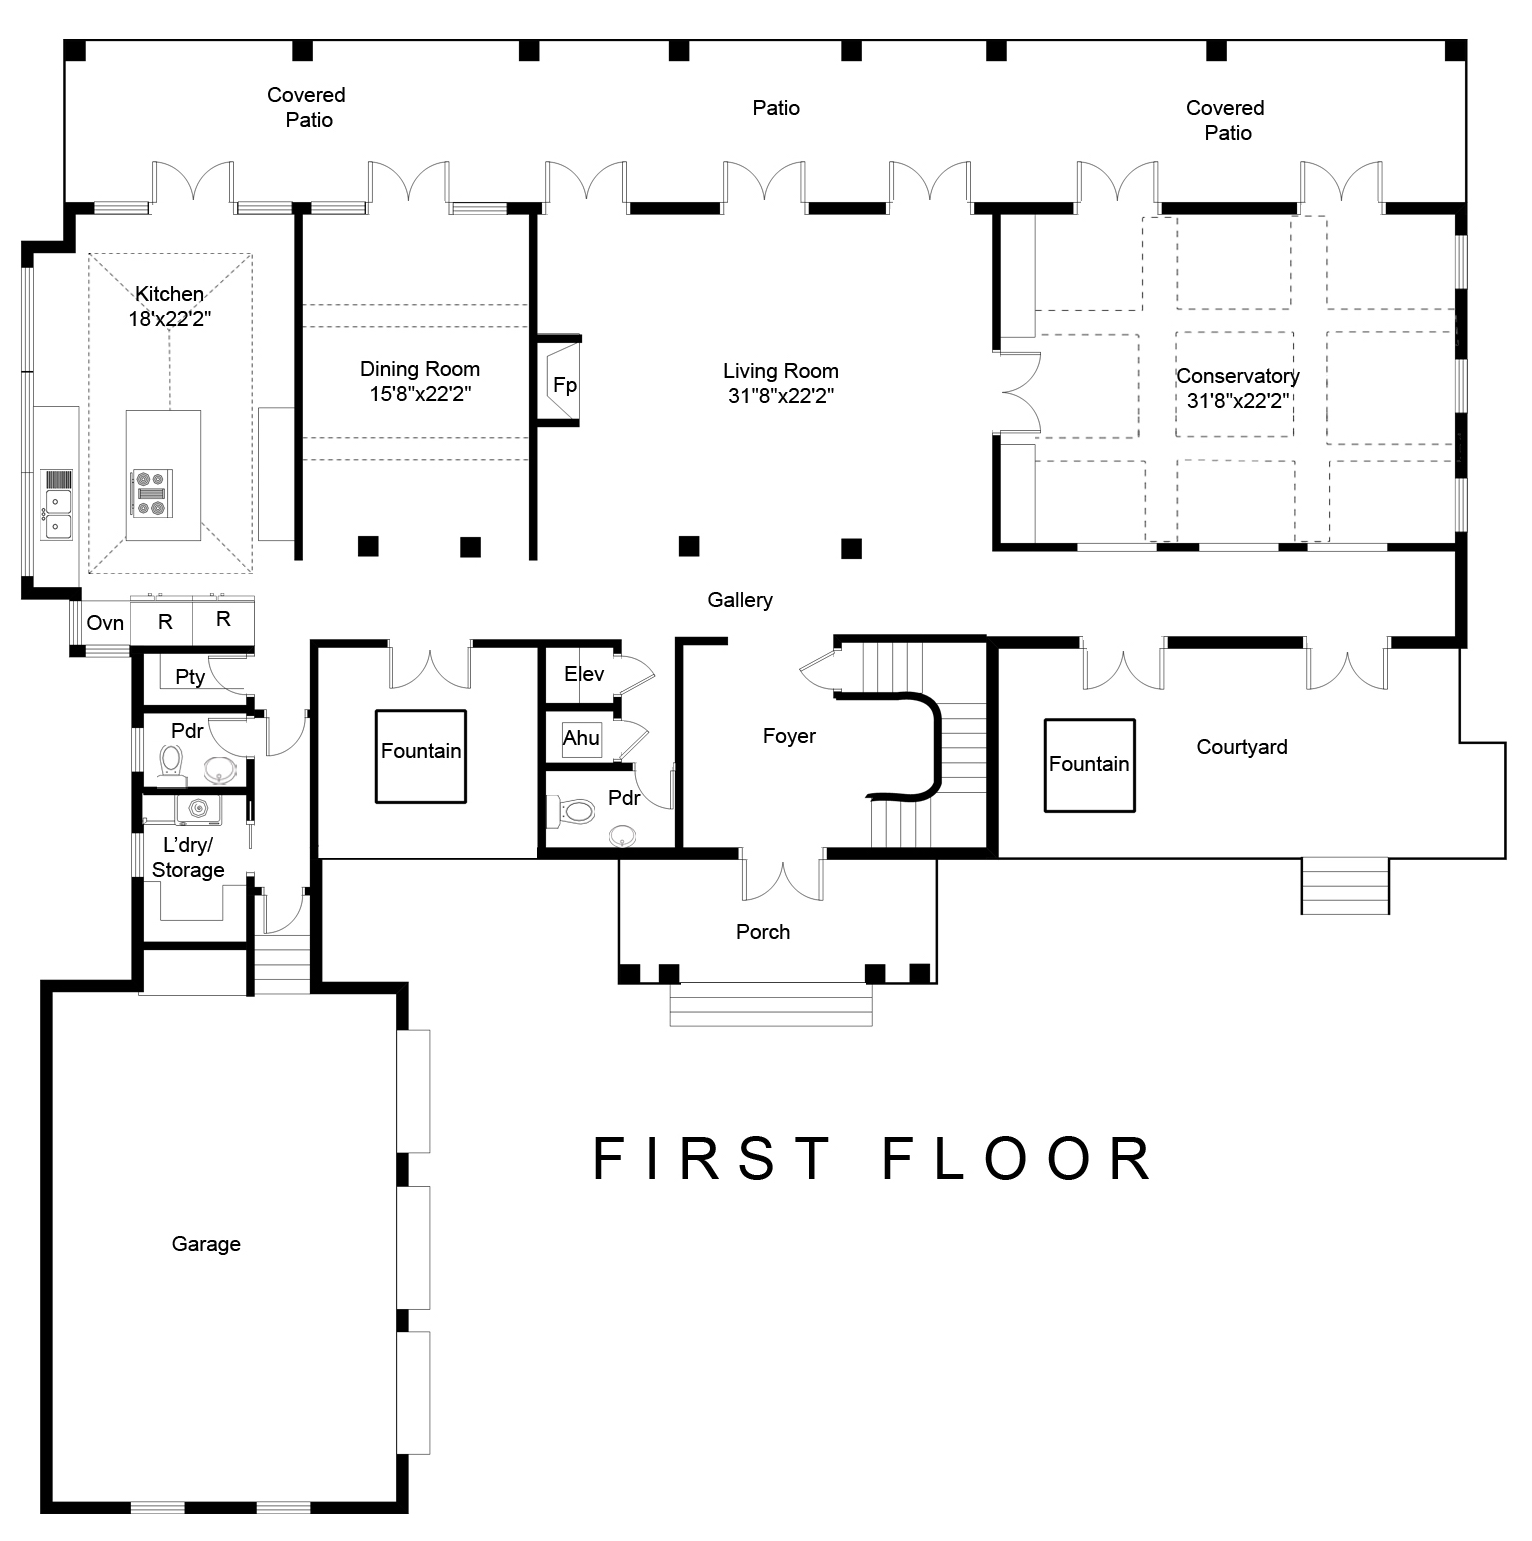 1st floor FloorPlan copy.jpg